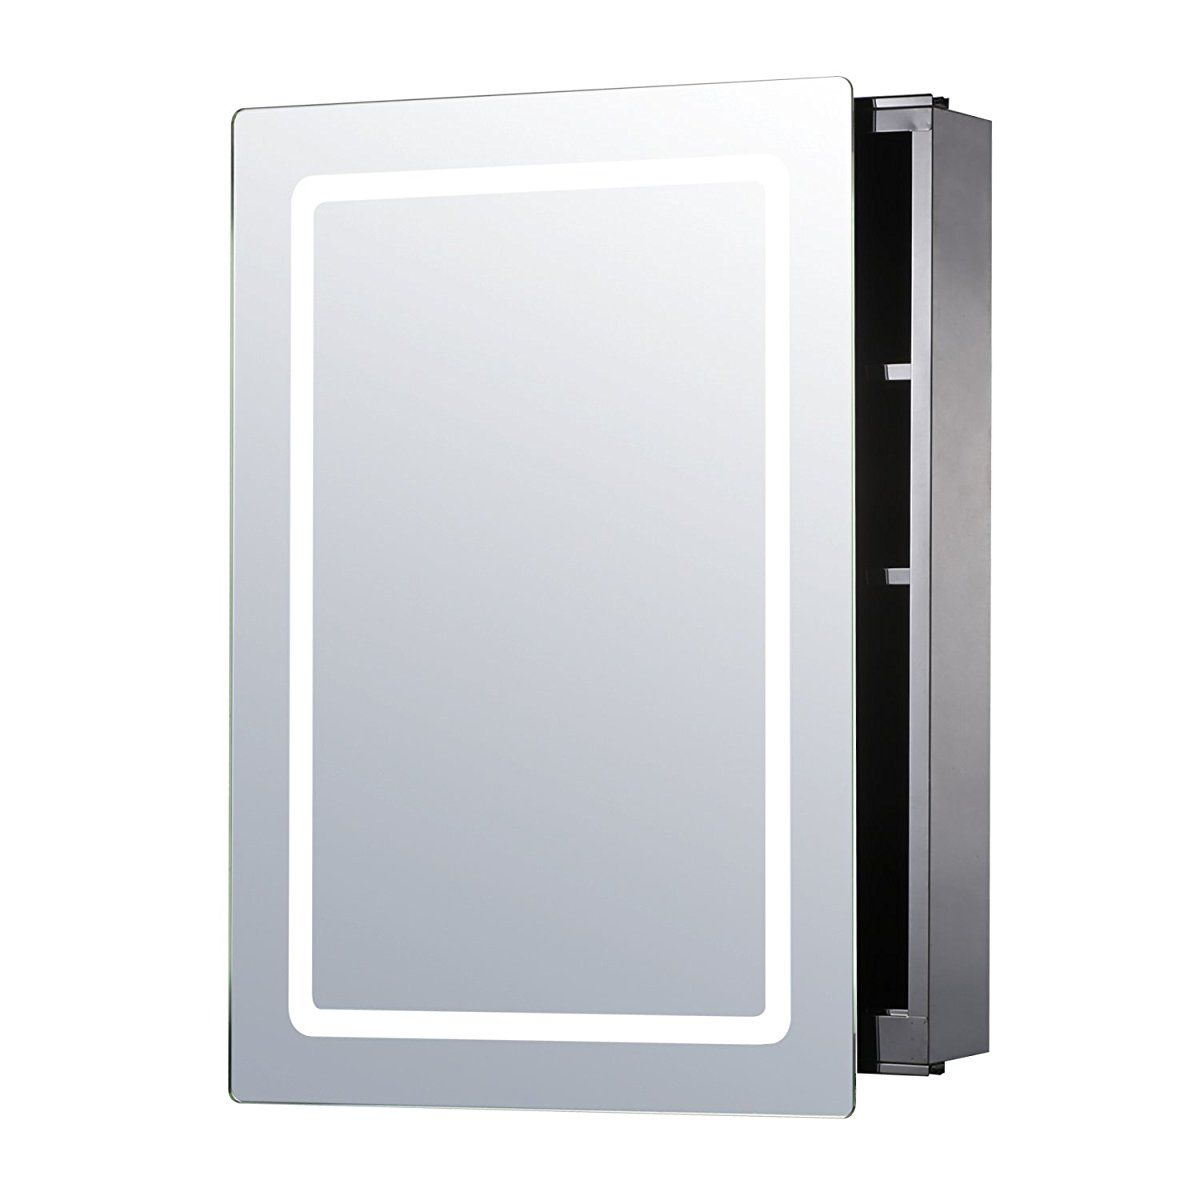 Led mirror medicine wall cabinet bathroom mirror cabinet with